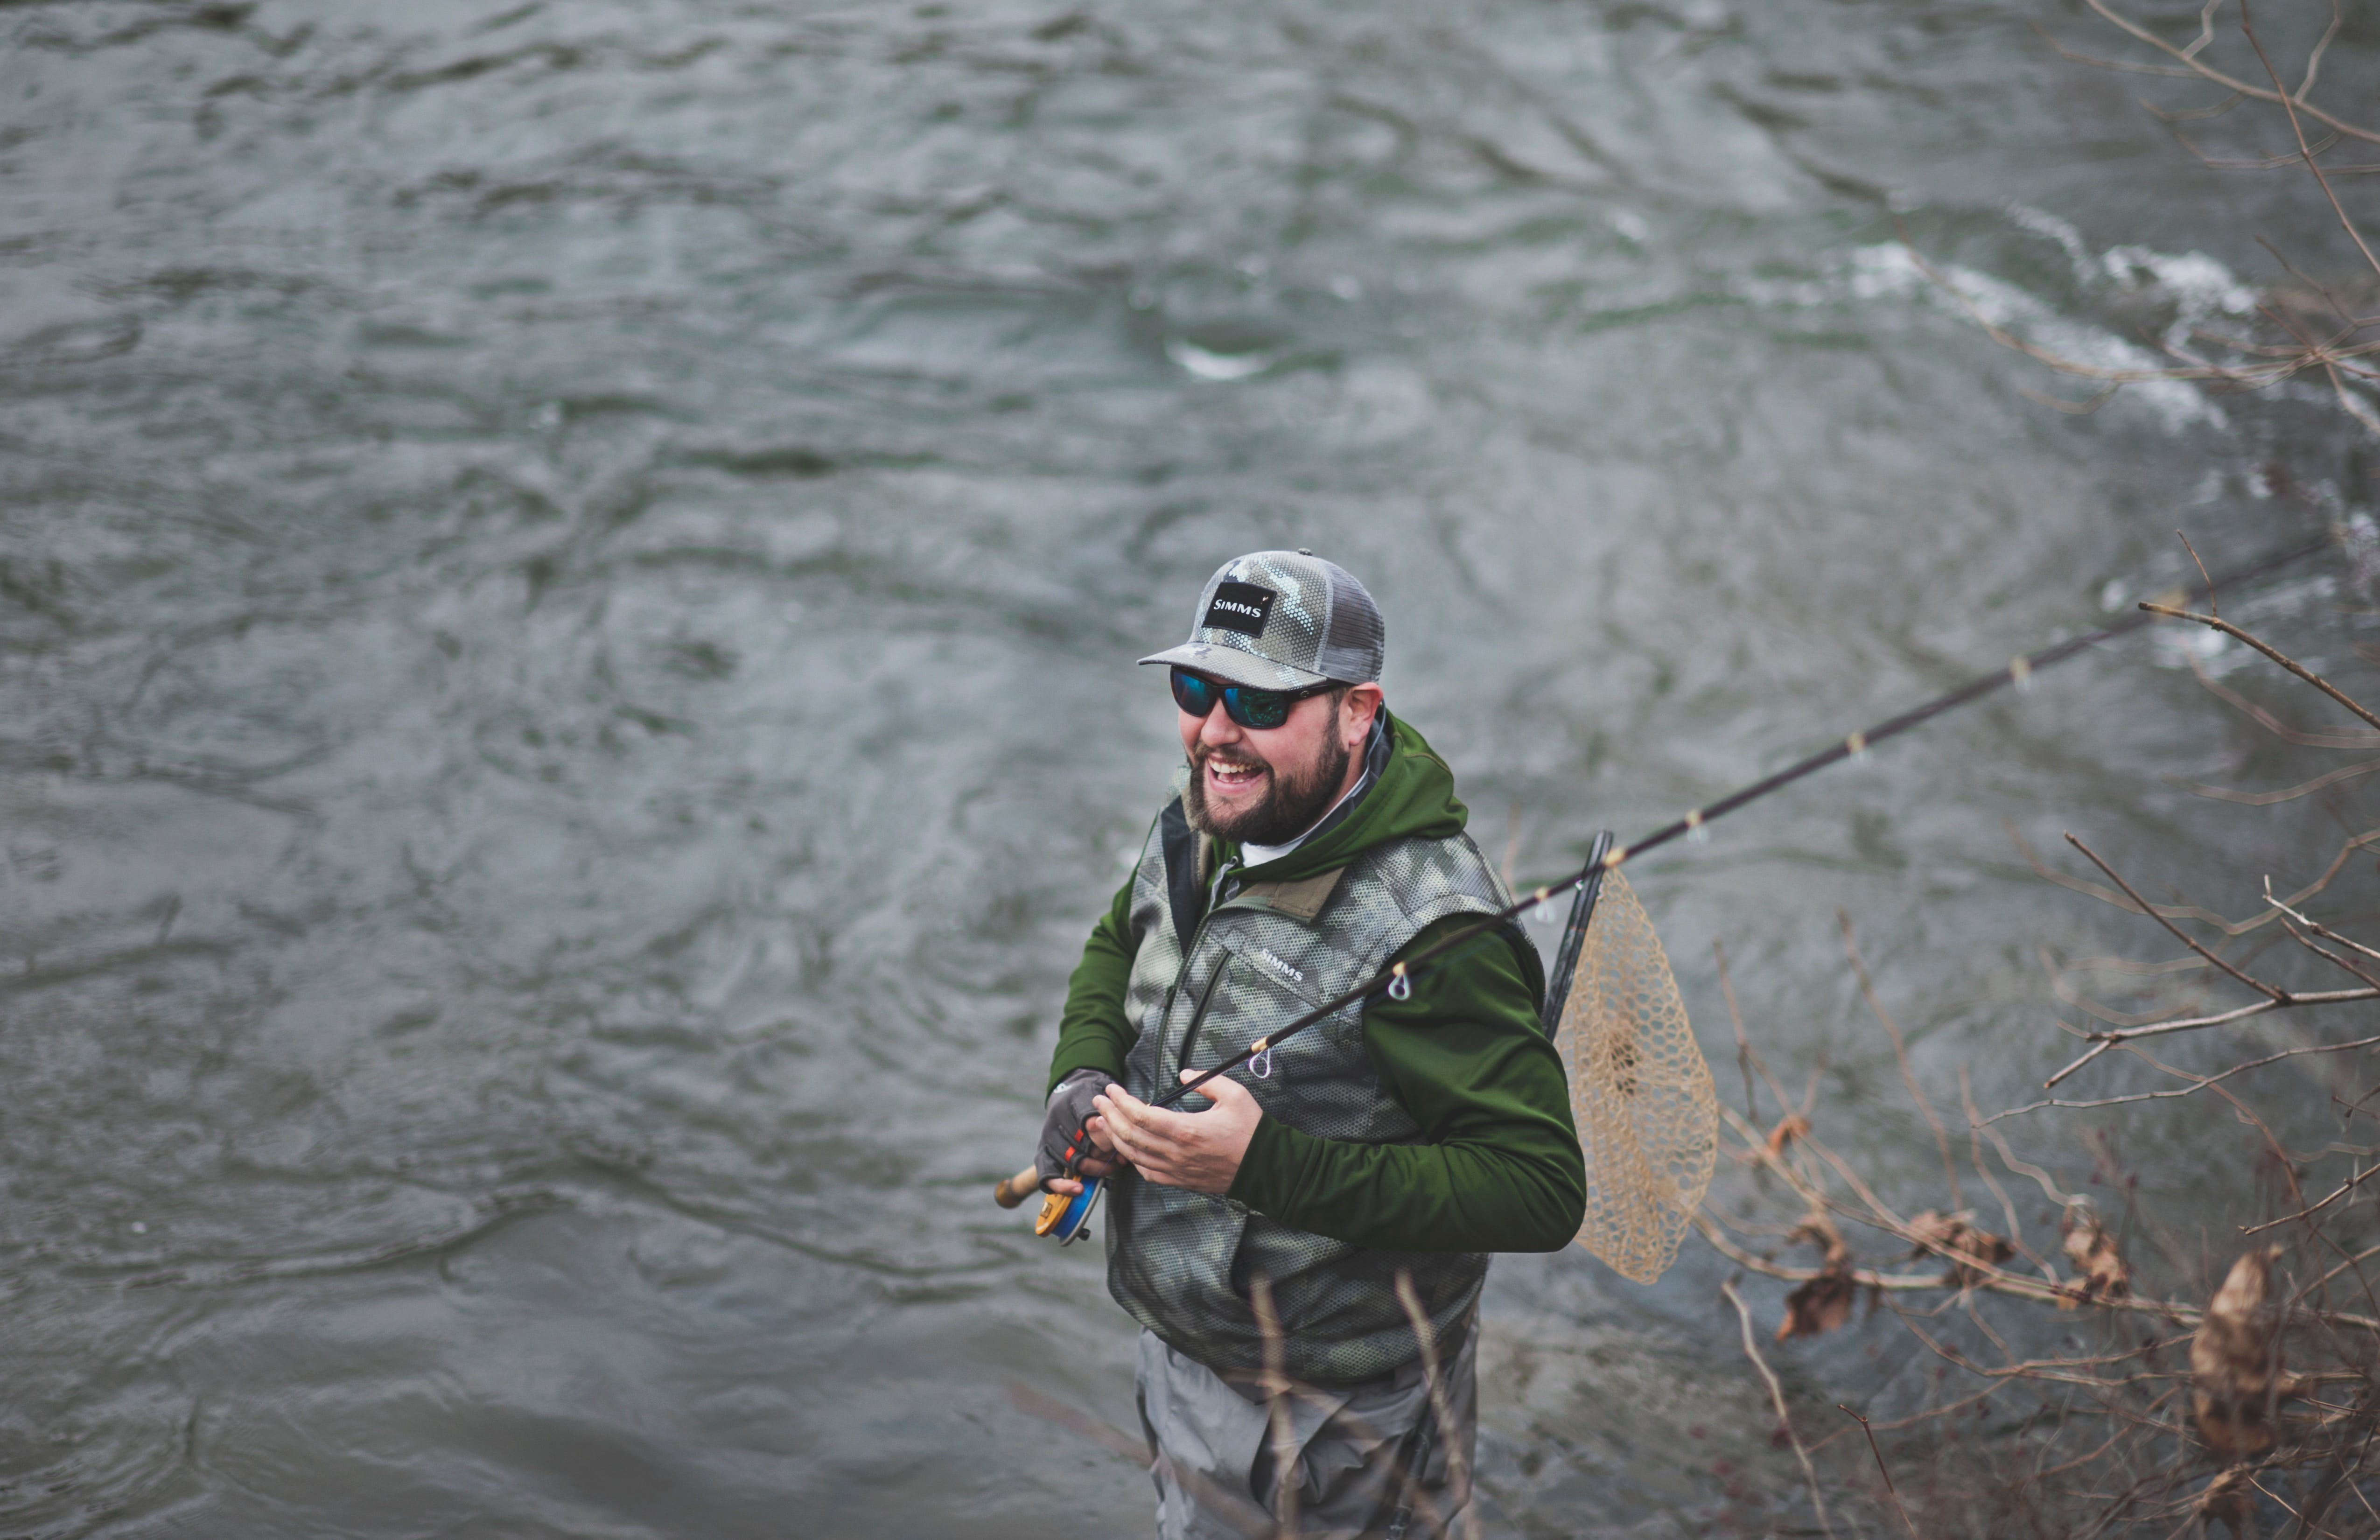 Man smiling and fly fishing on a river